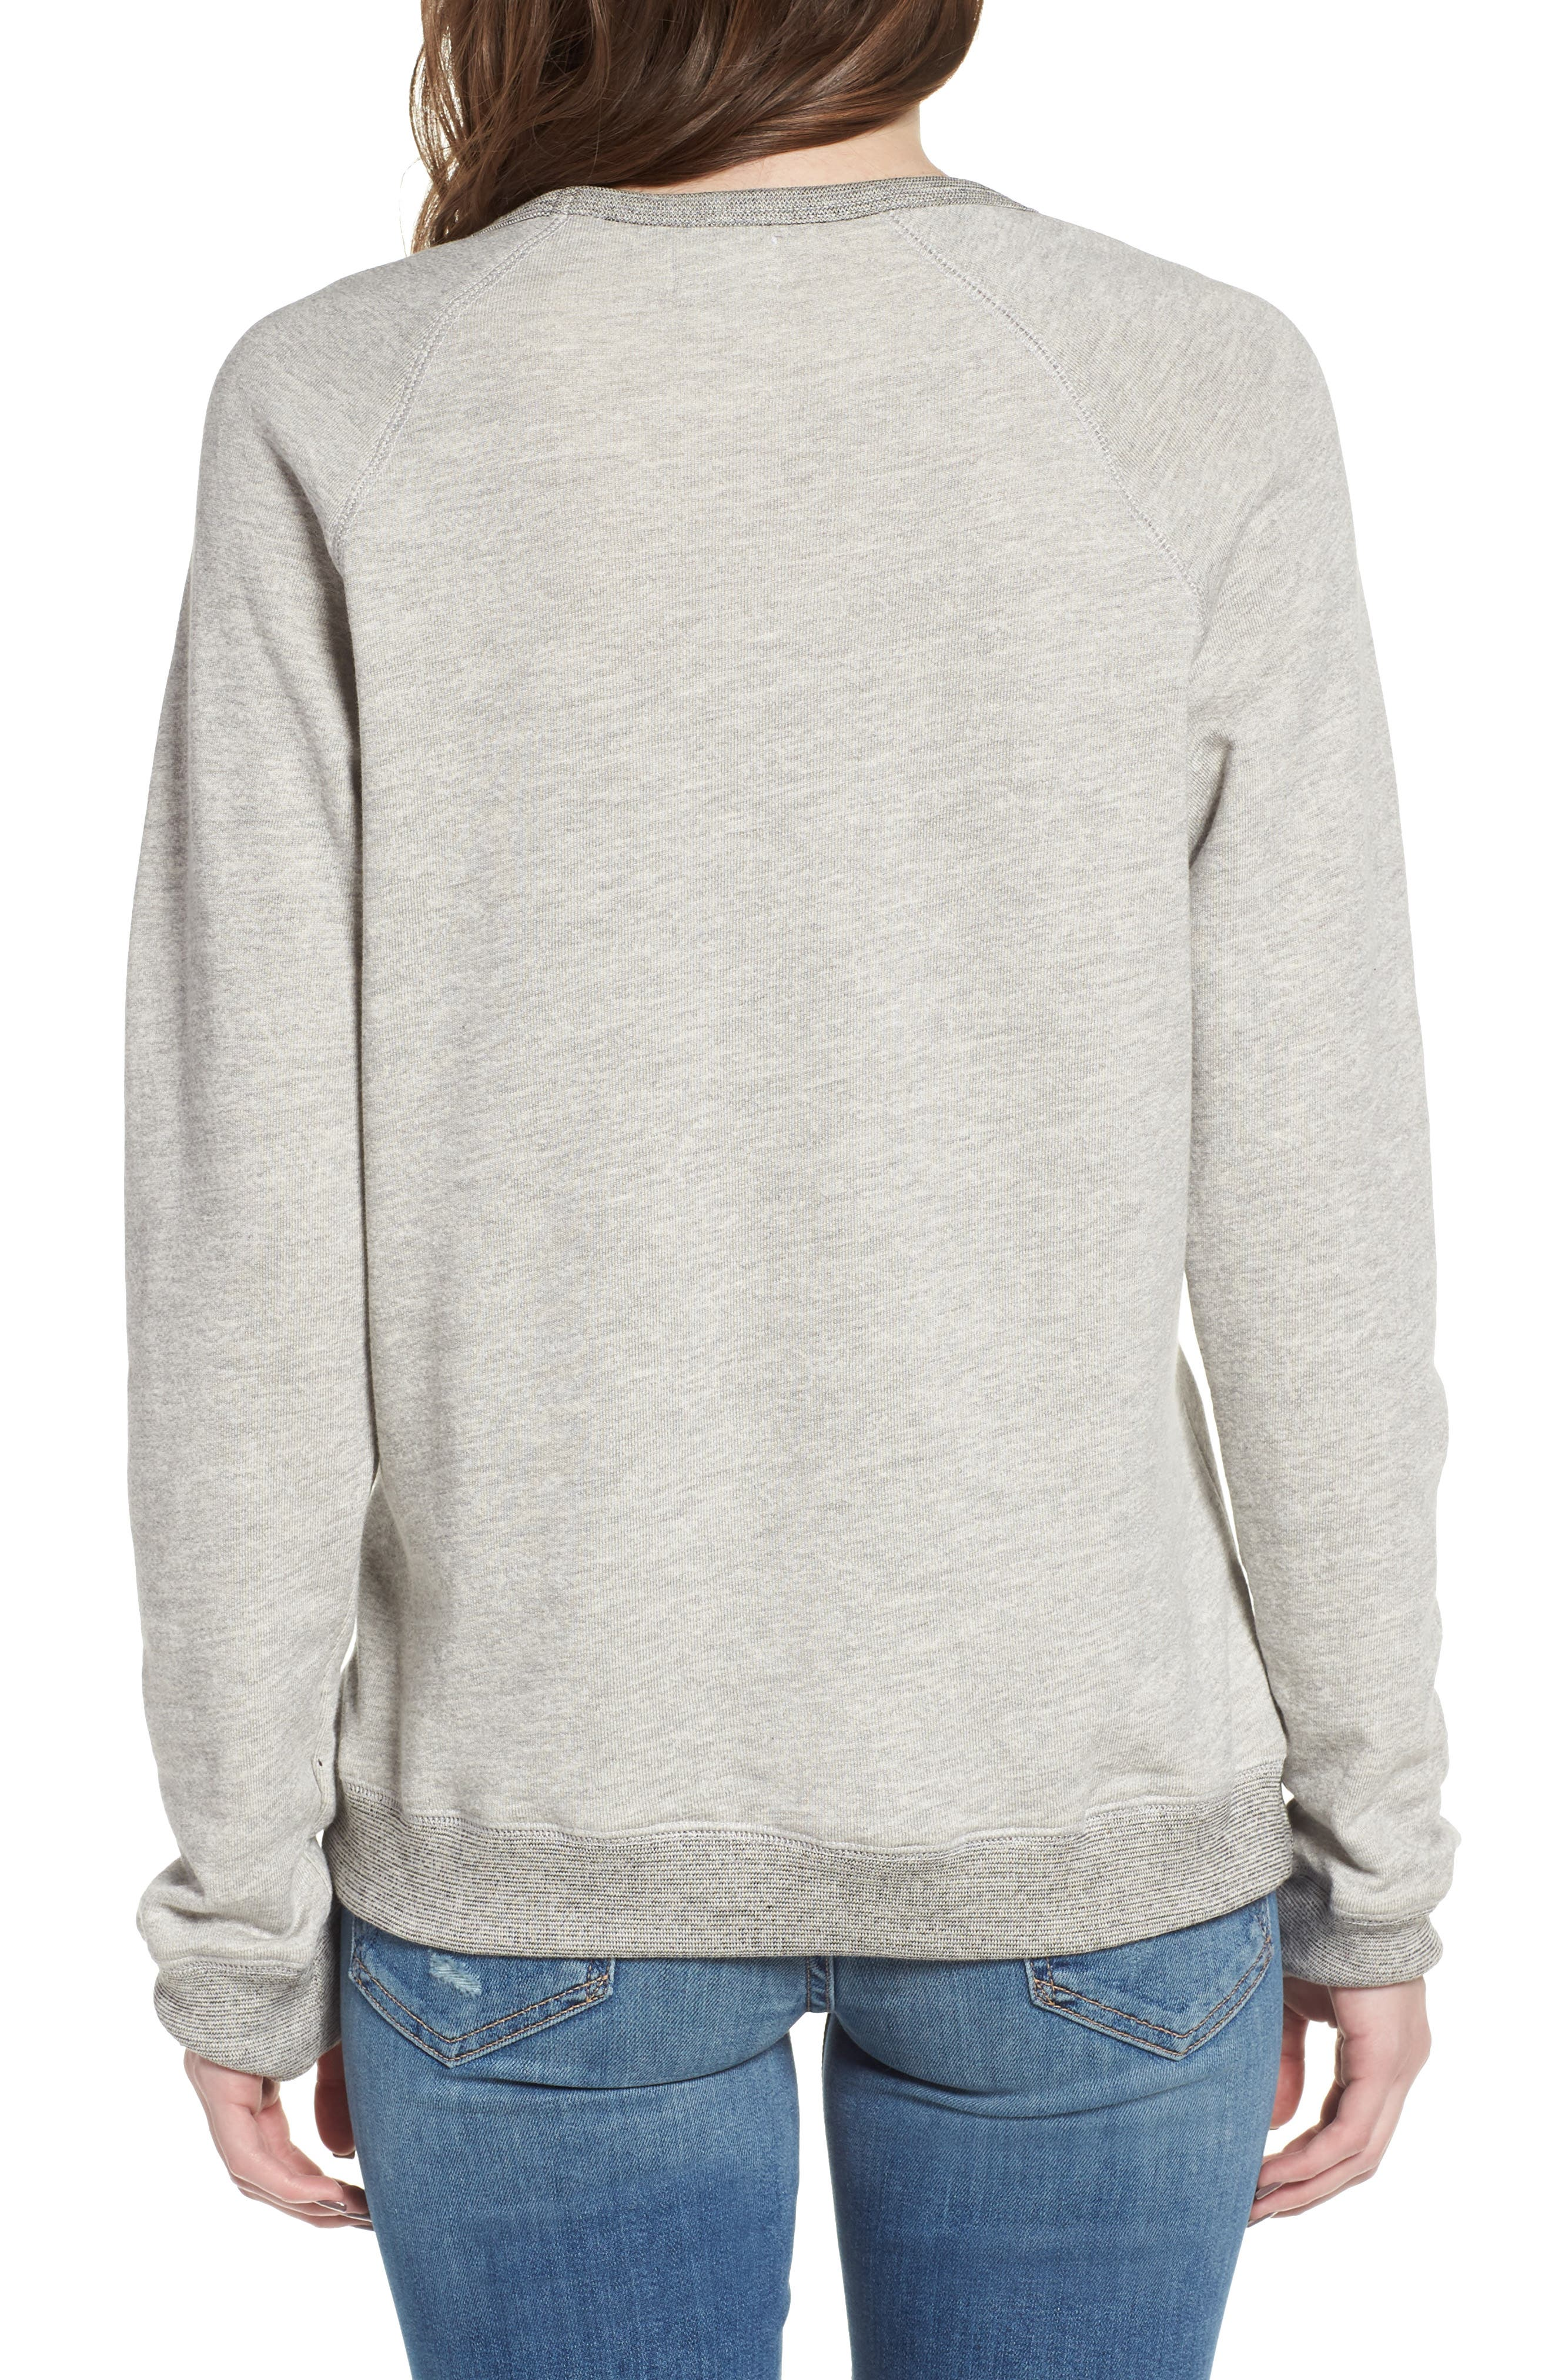 Influencer Sweatshirt,                             Alternate thumbnail 2, color,                             Heather Grey